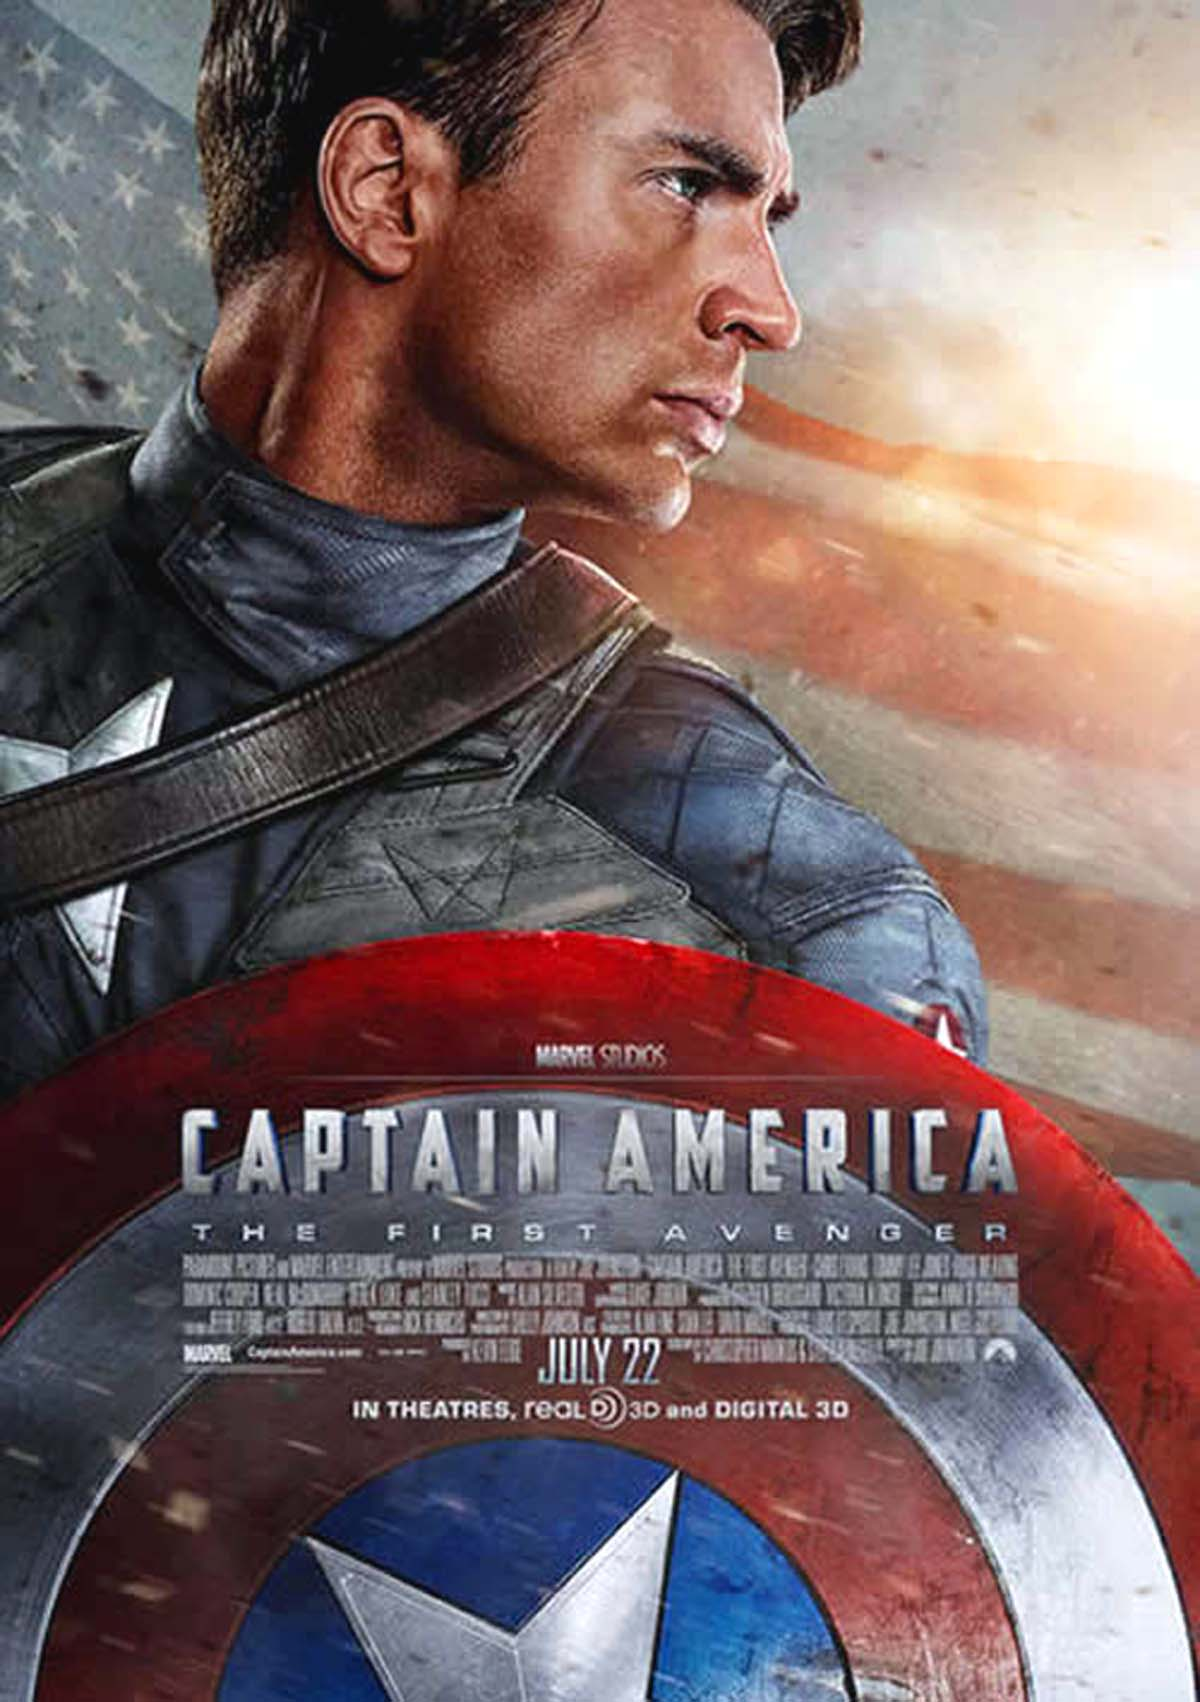 Captain America poster Chris Evans new